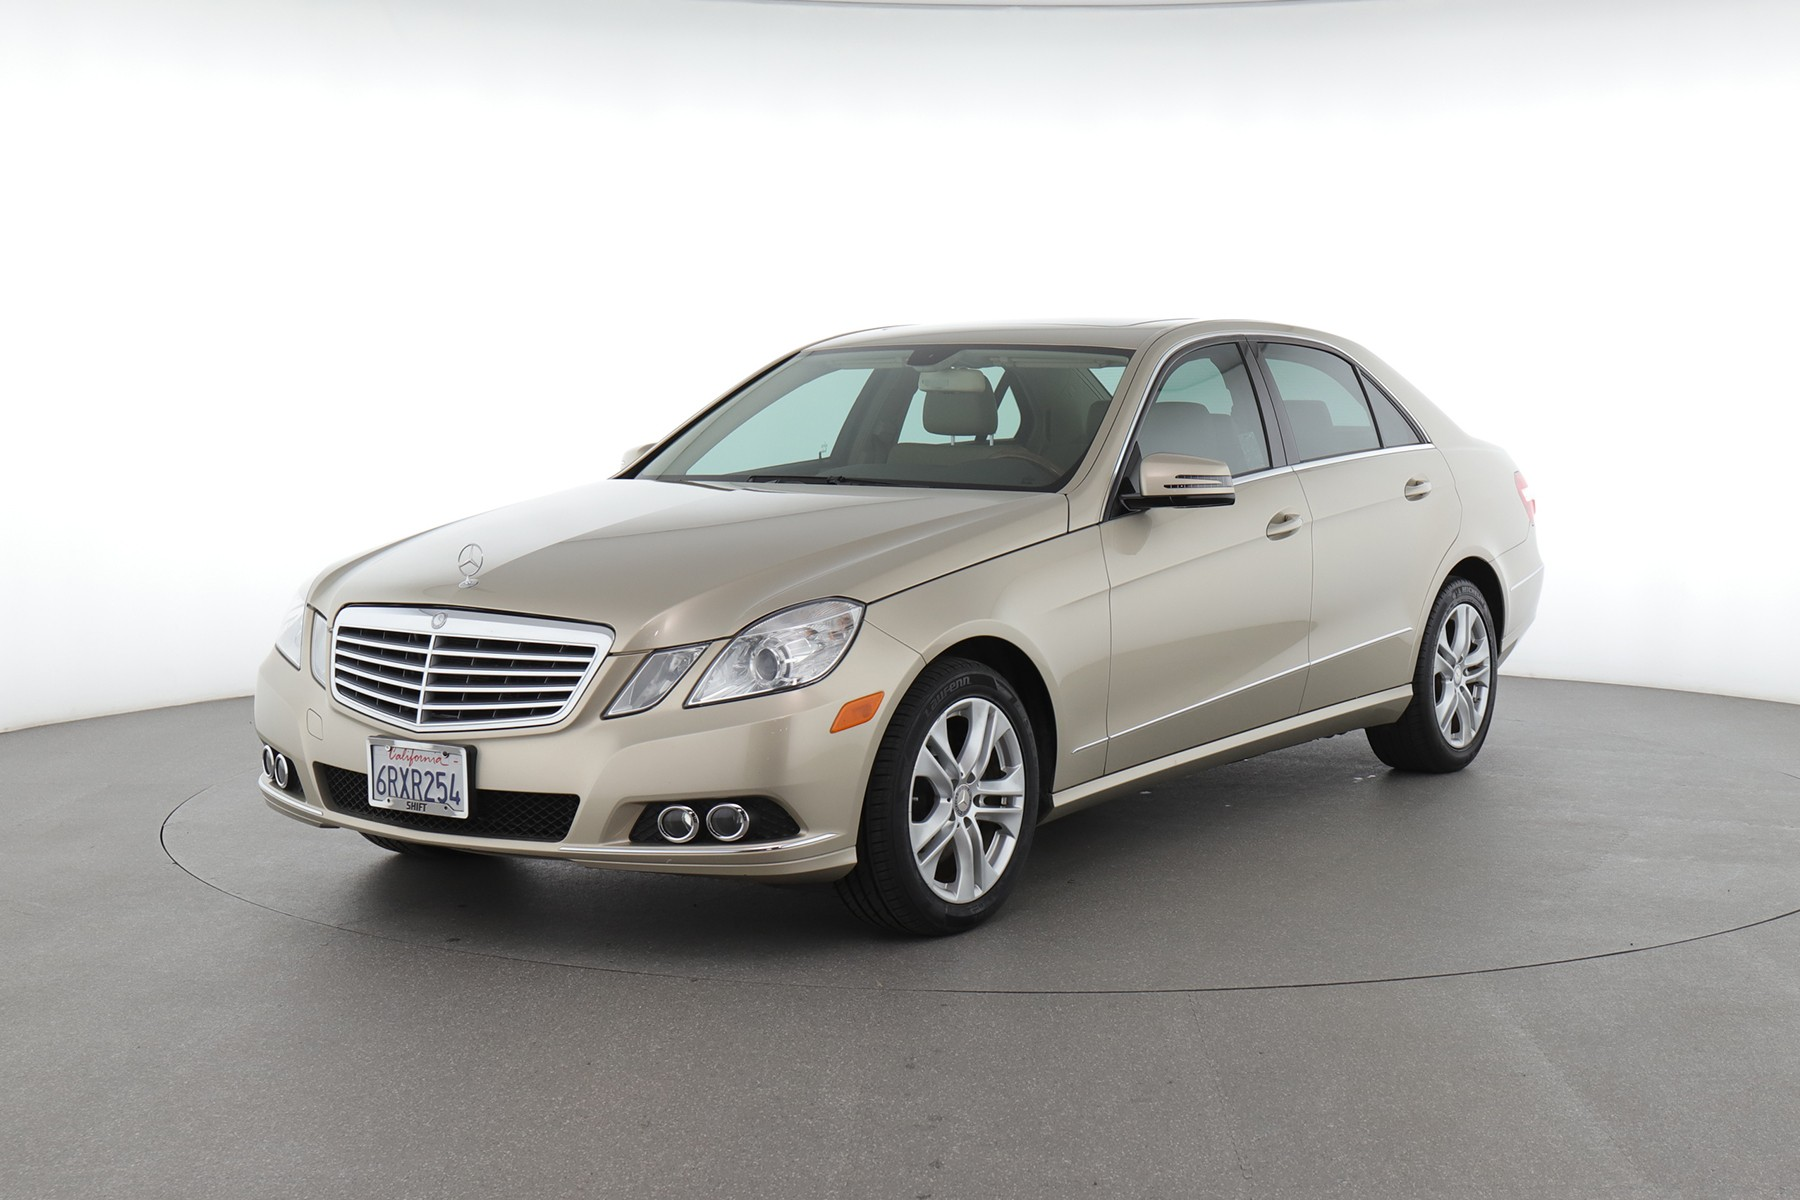 2011 Mercedes-Benz E 350 Luxury (from $14,700)